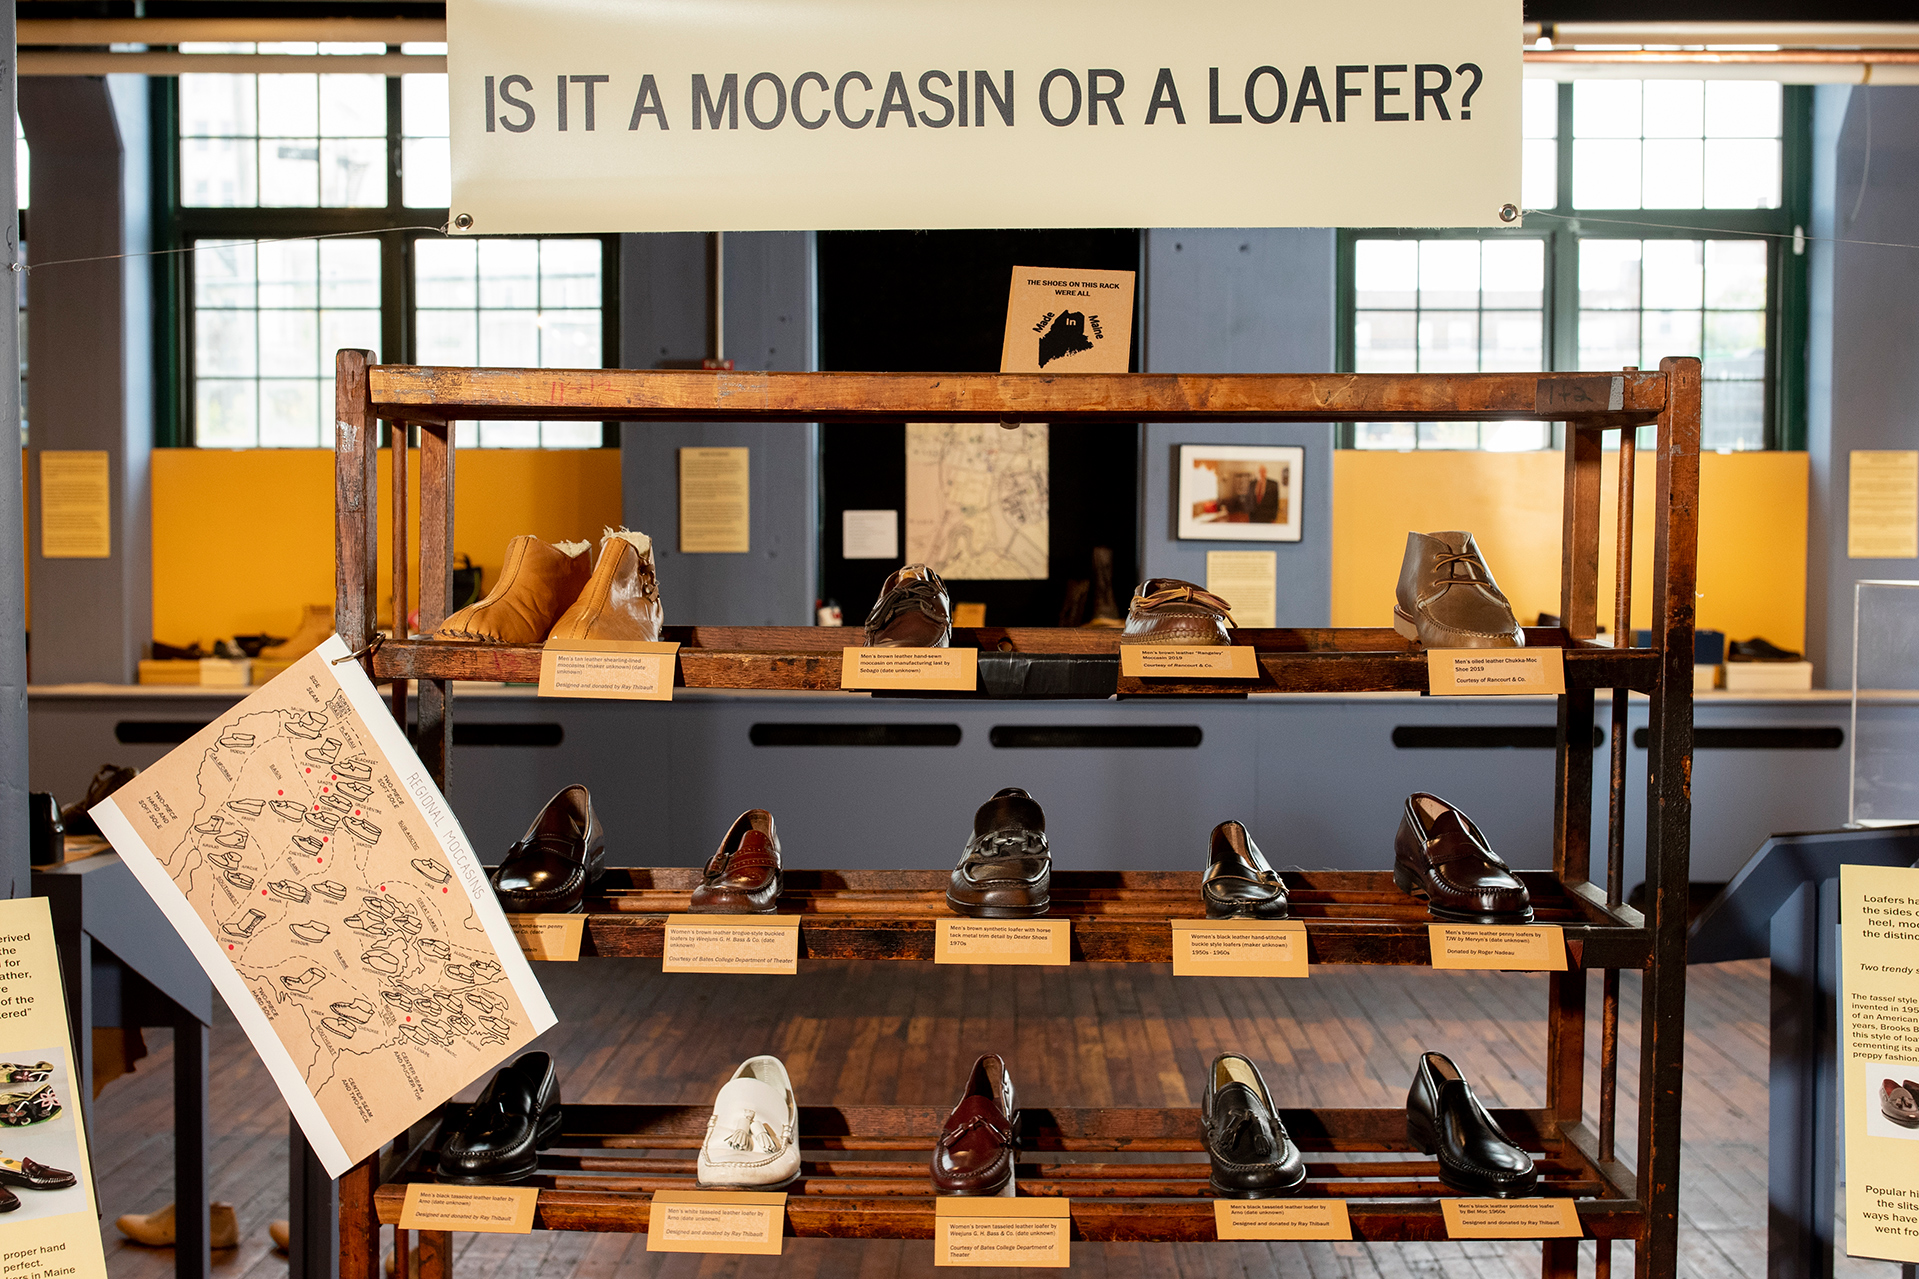 Moccasins and loafers were distinctively Maine shoes in the industry's heyday. (Phyllis Graber Jensen/Bates College)